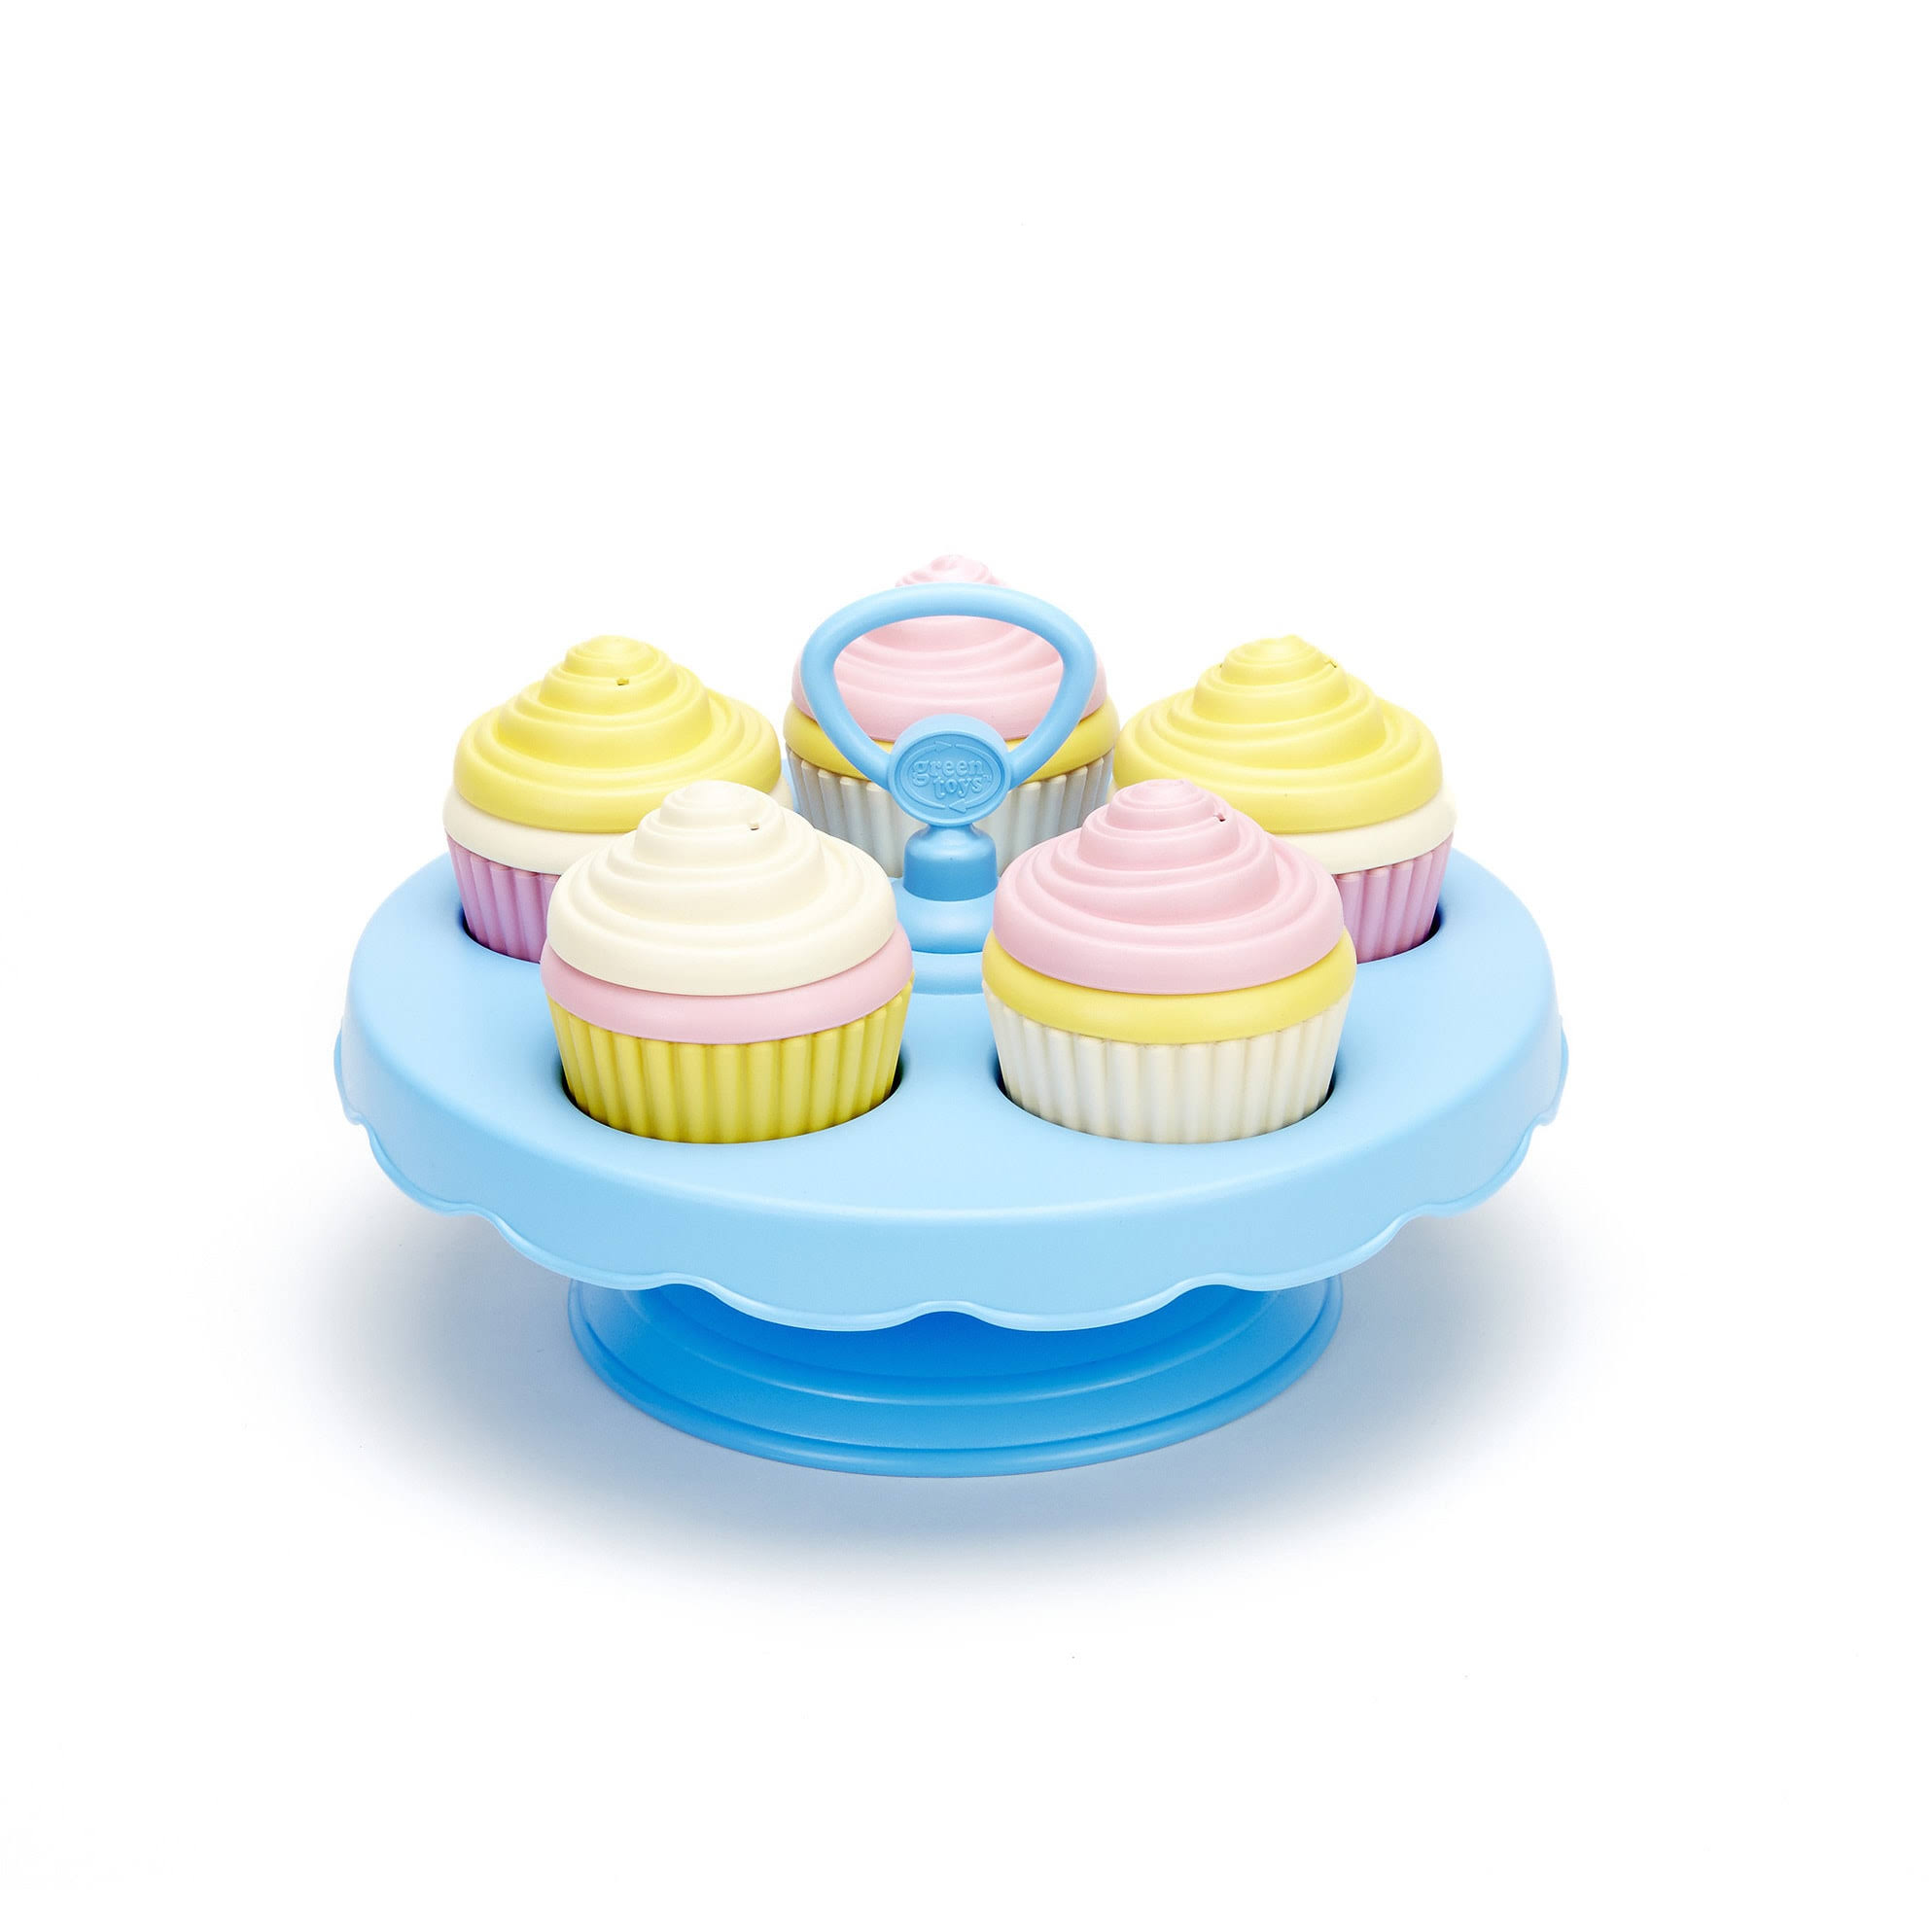 Green Toys Cupcake Toy Set